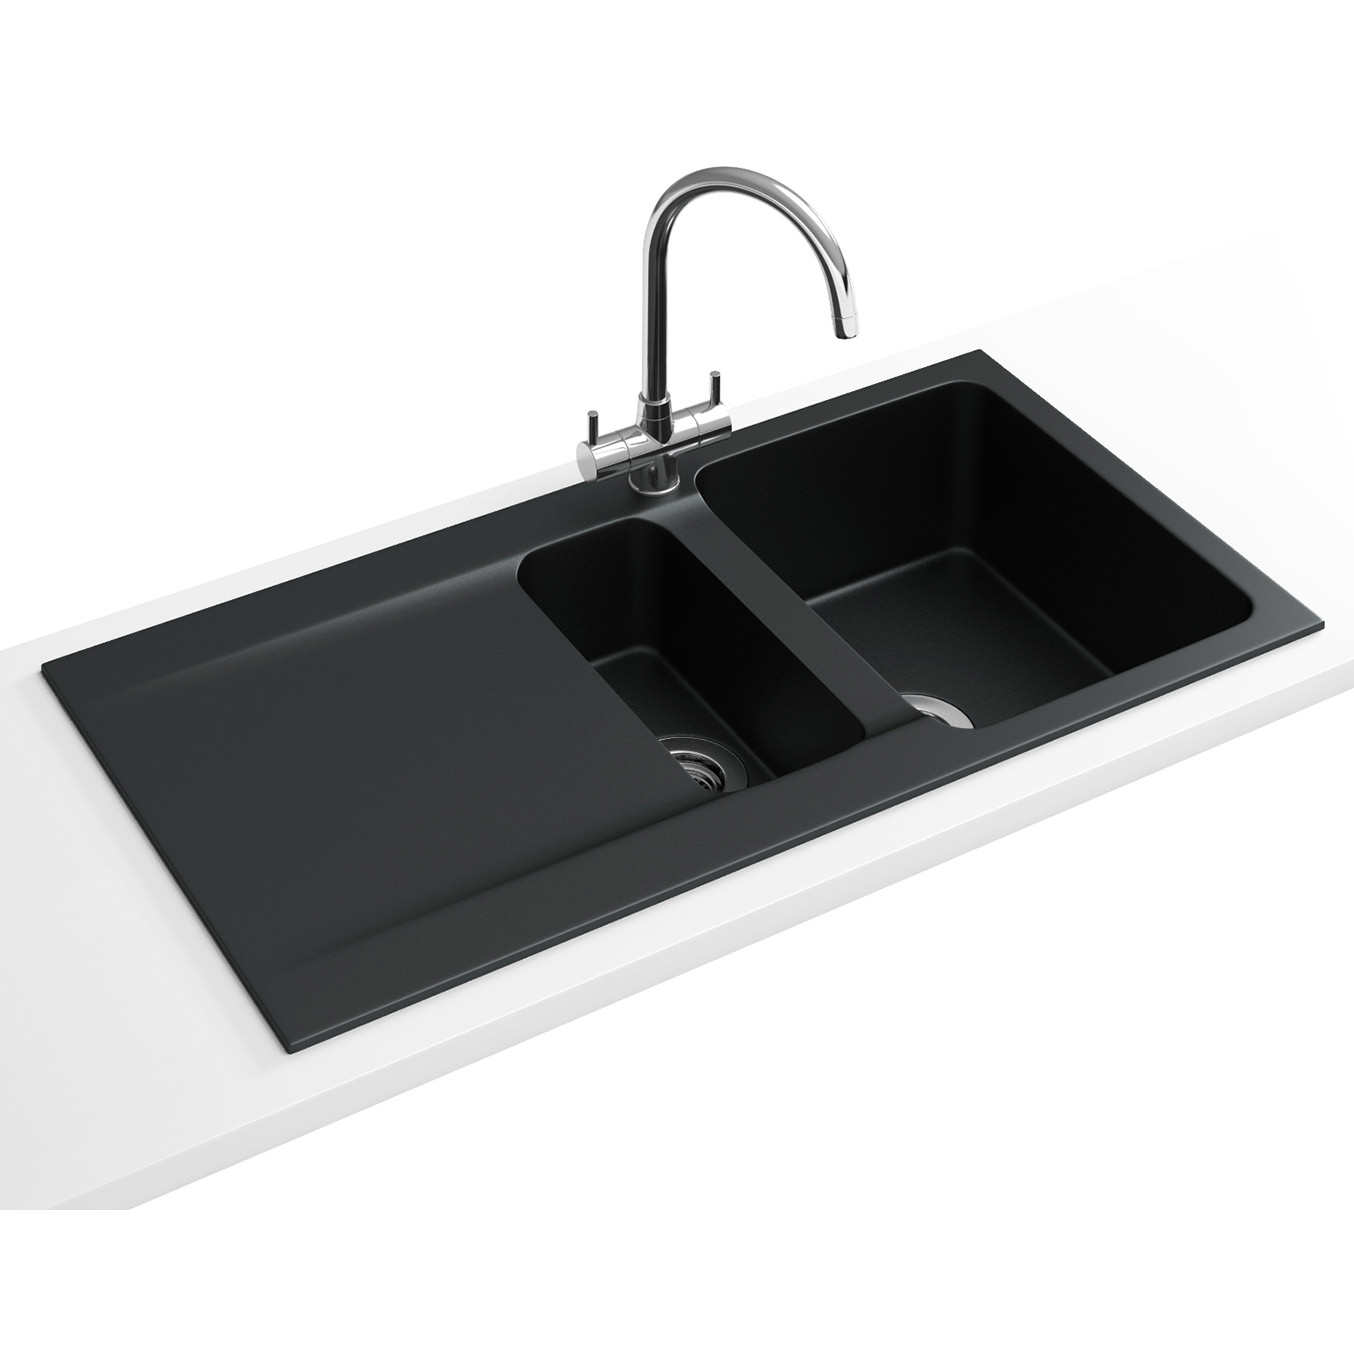 Franke Orion Oid 651 Tectonite 1 5 Bowl Kitchen Inset Sink